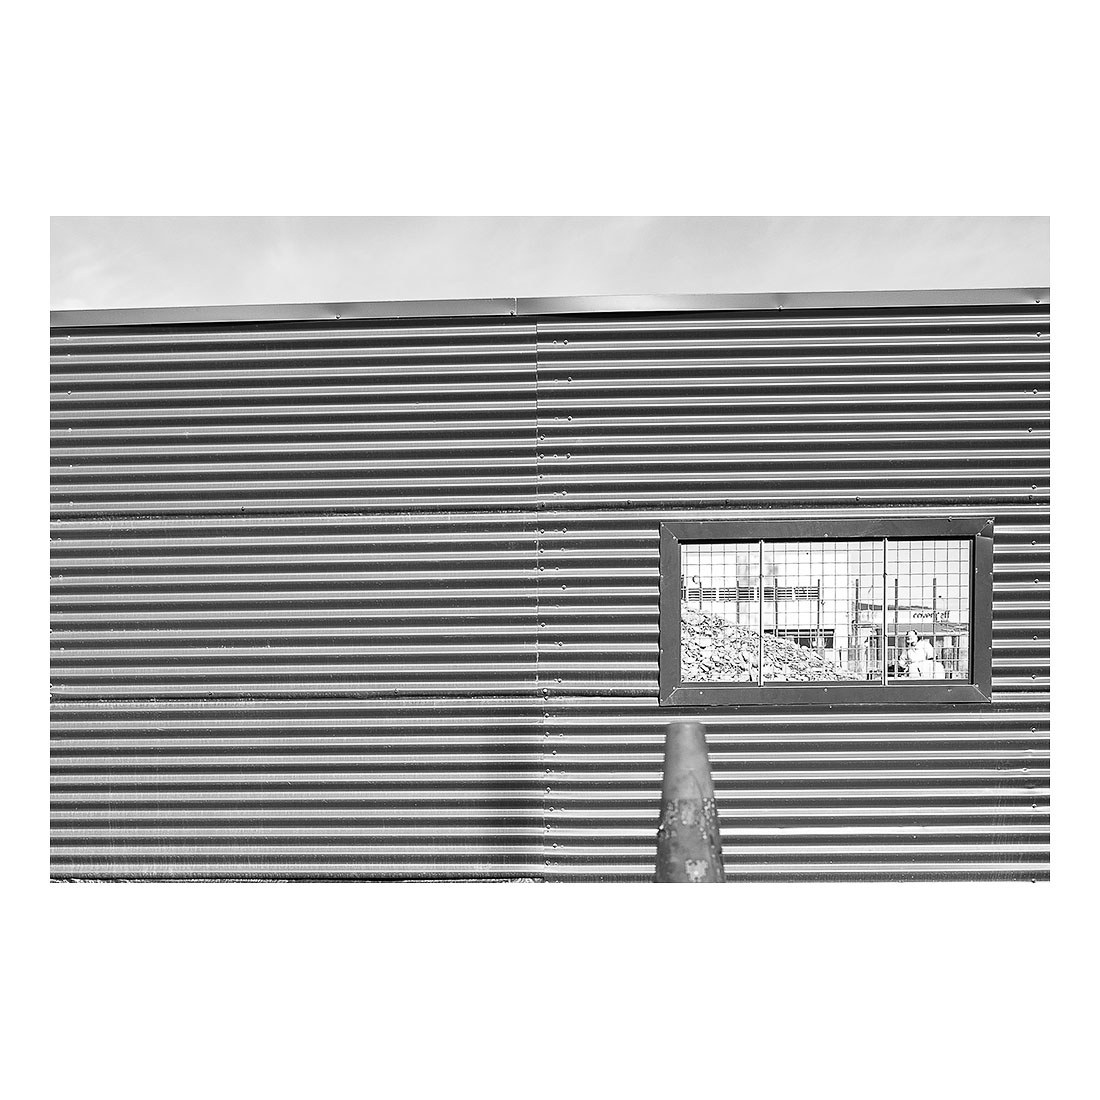 Corrugated   (2015, printed 2017) Chromogenic print 15cm x 20cm Open Edition